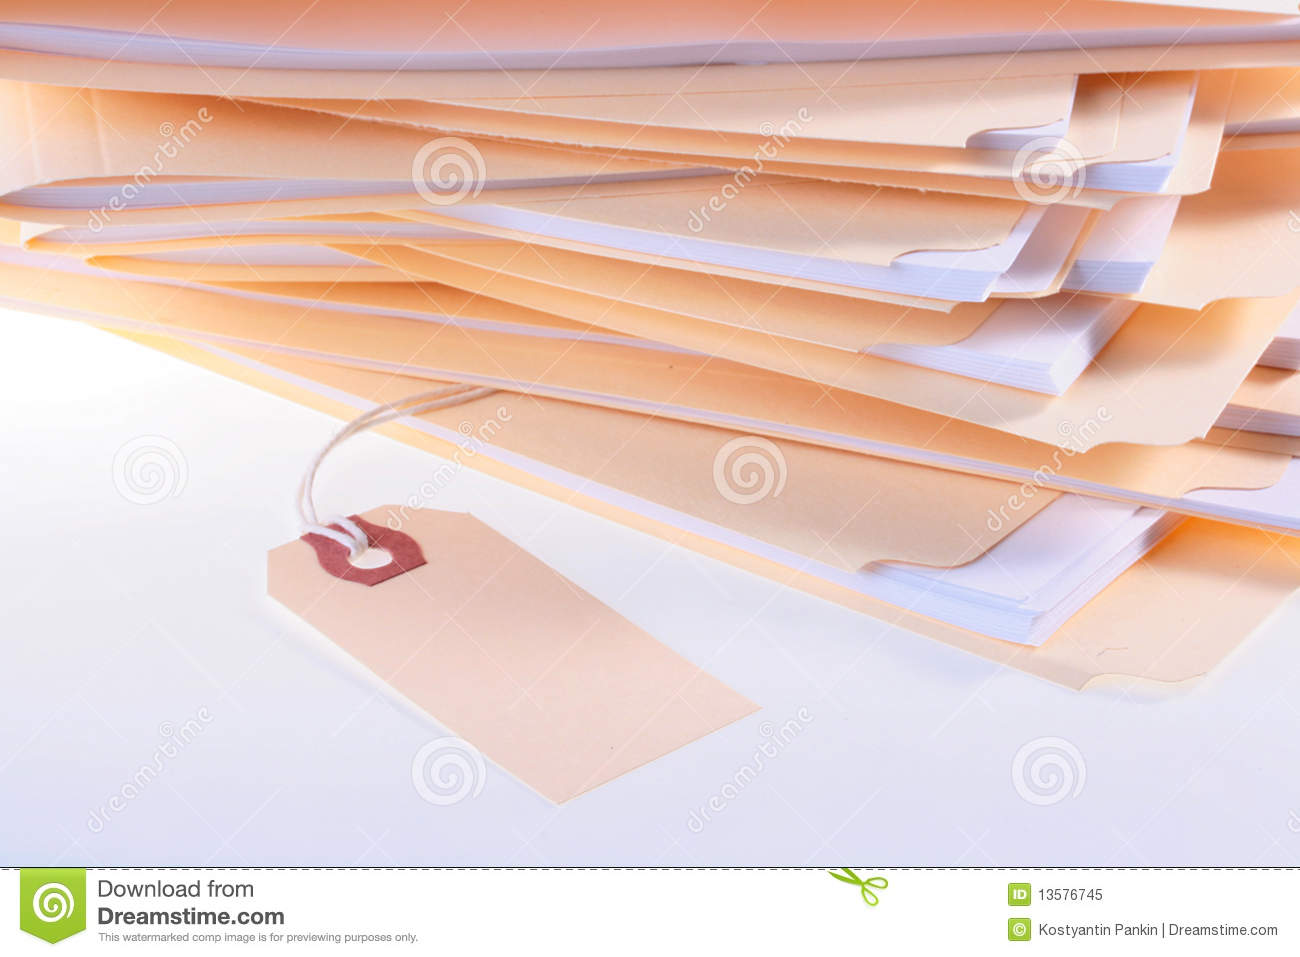 Folders with office documents